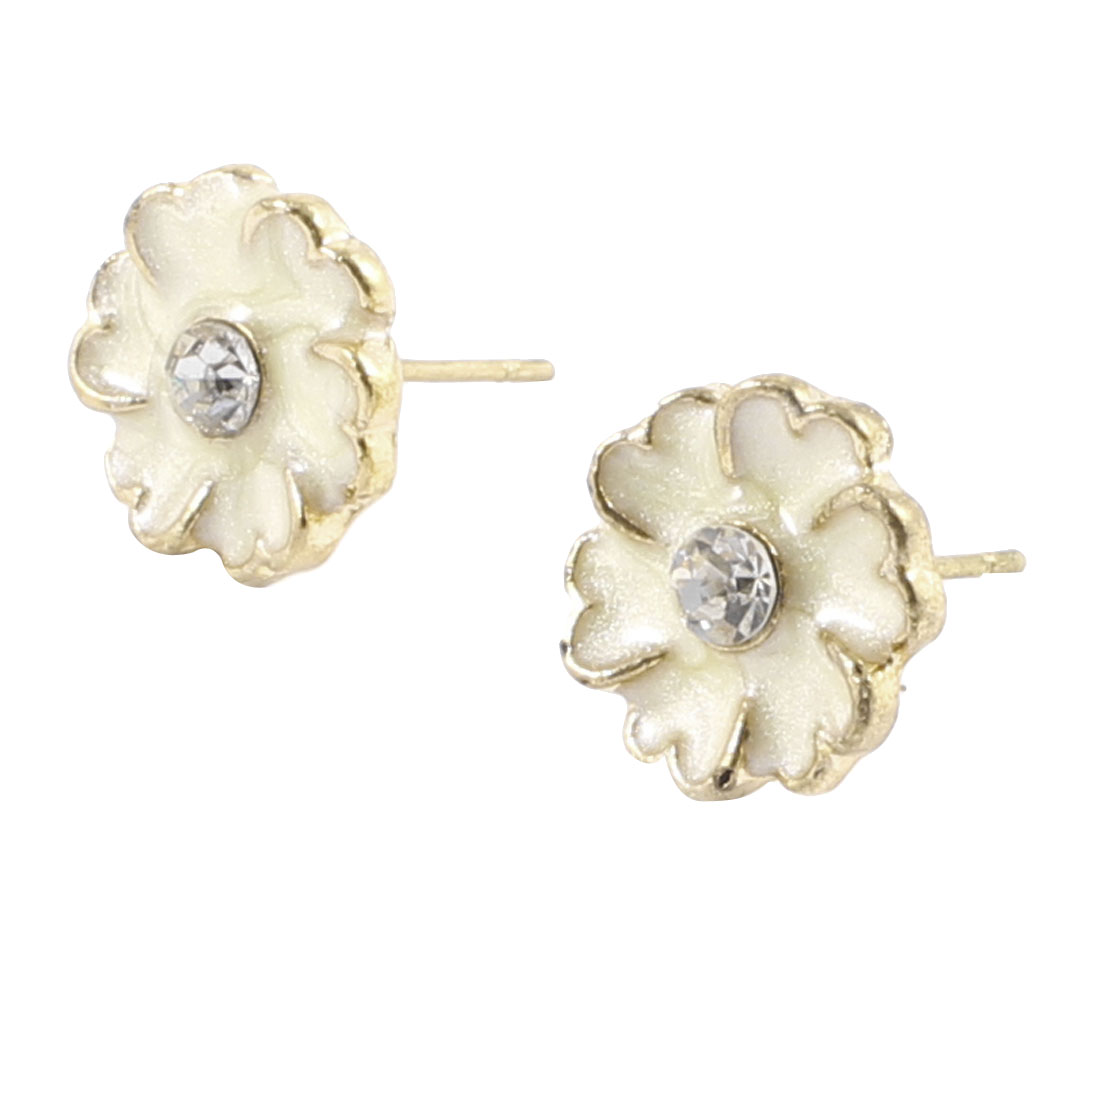 Women Rhinestone White Flower Pierced Ear Stud Earrings Eardrops Pair